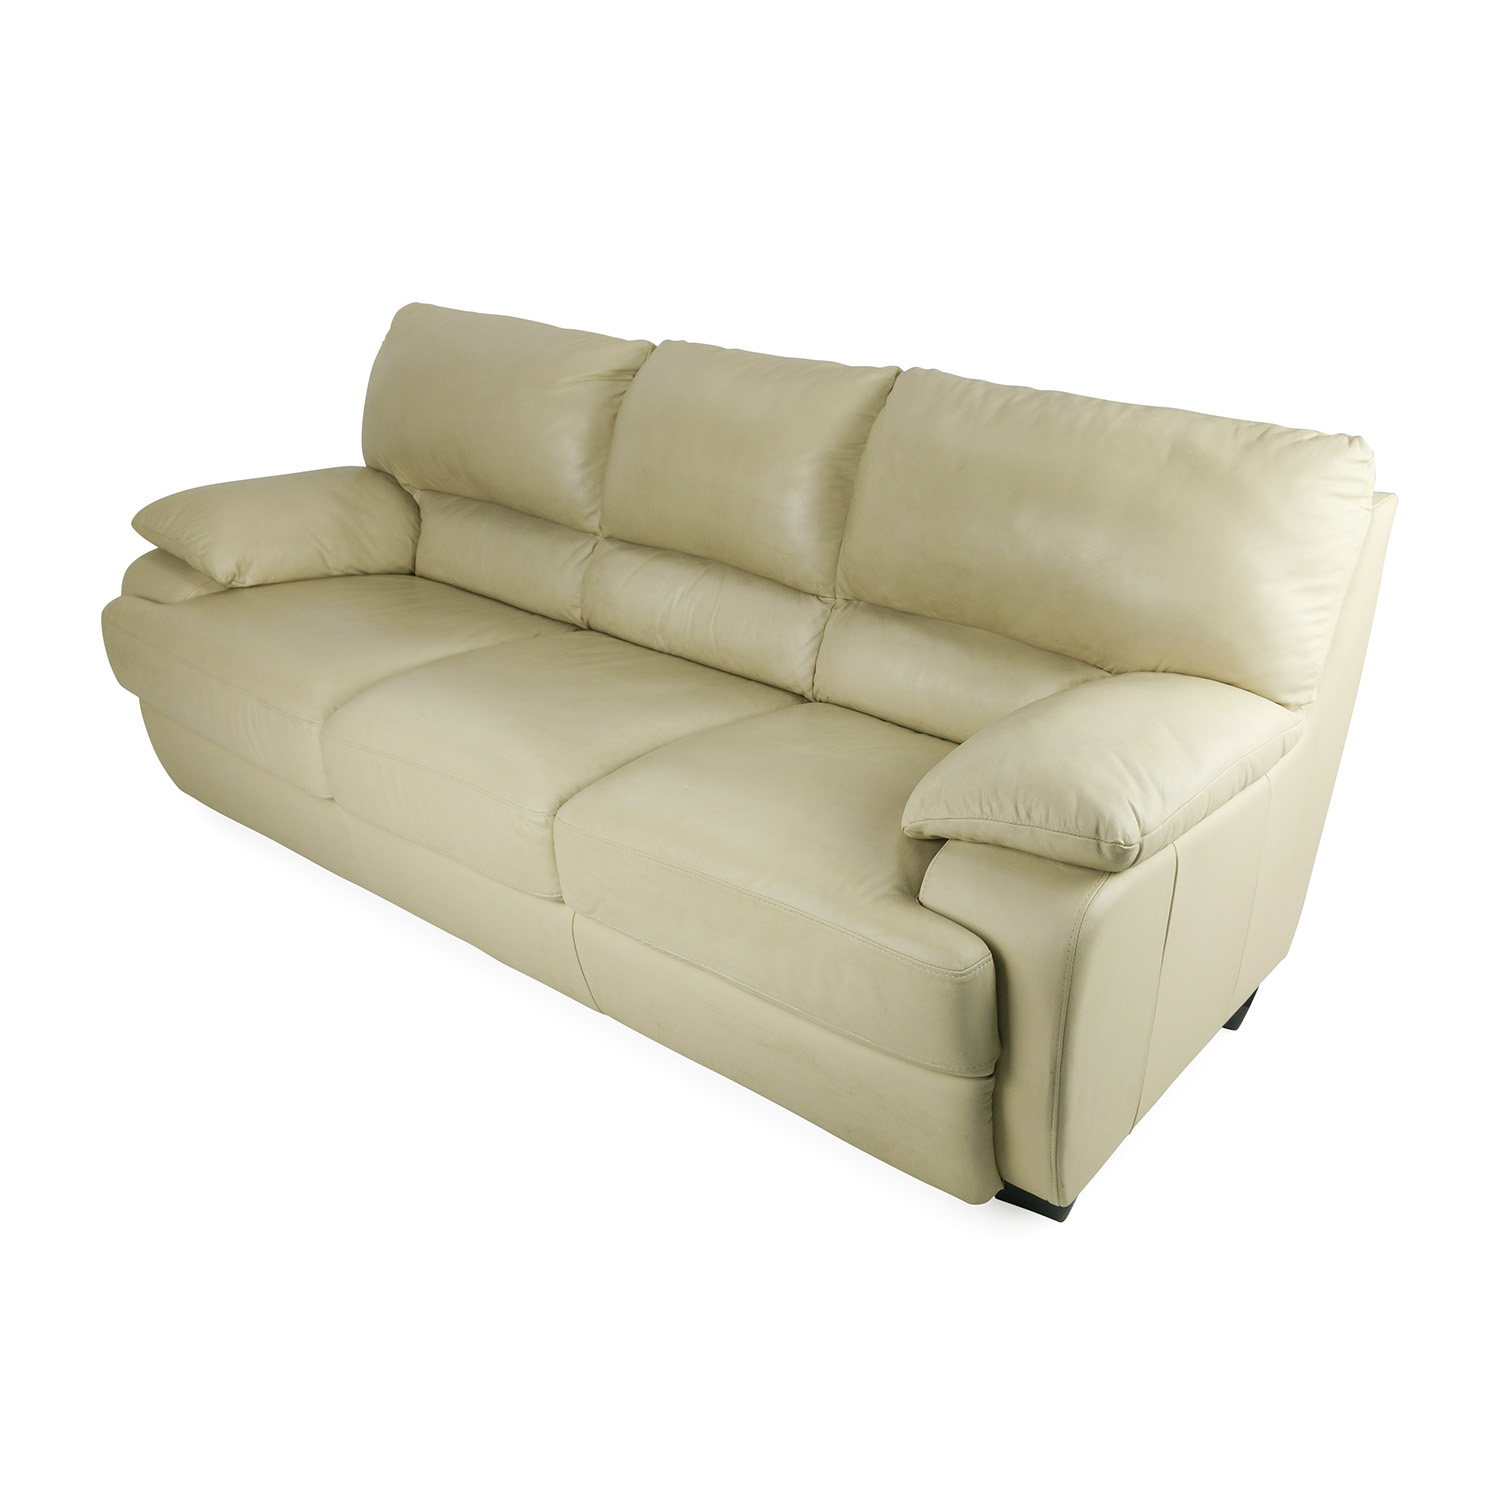 Leather Tan Sofa 28 Images 87 Tan Leather Match Power Motion Sofa Rcwilley Image1 800 Jpg